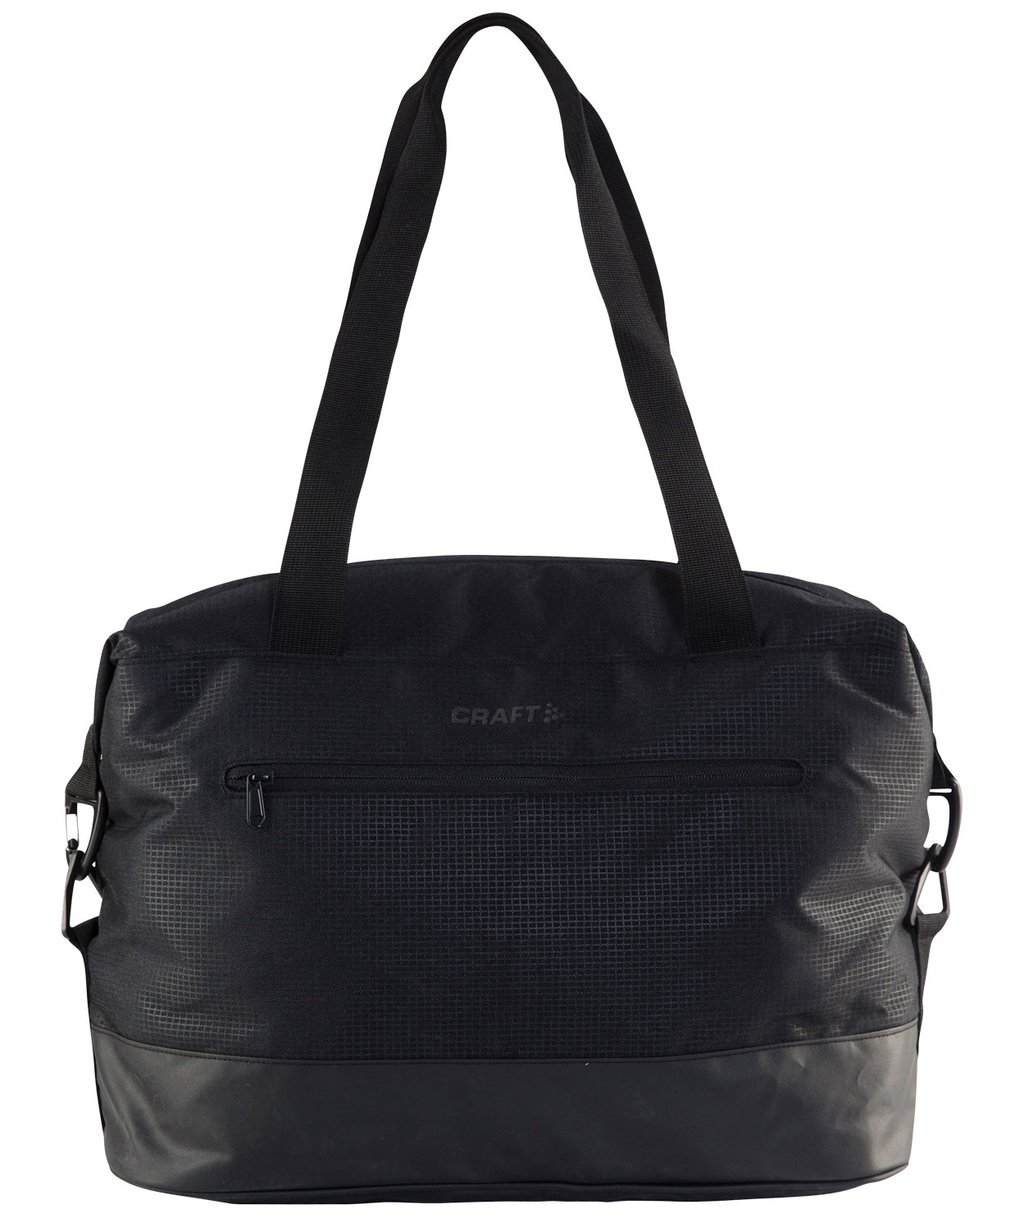 Craft Transit Studio bag 25L, Black